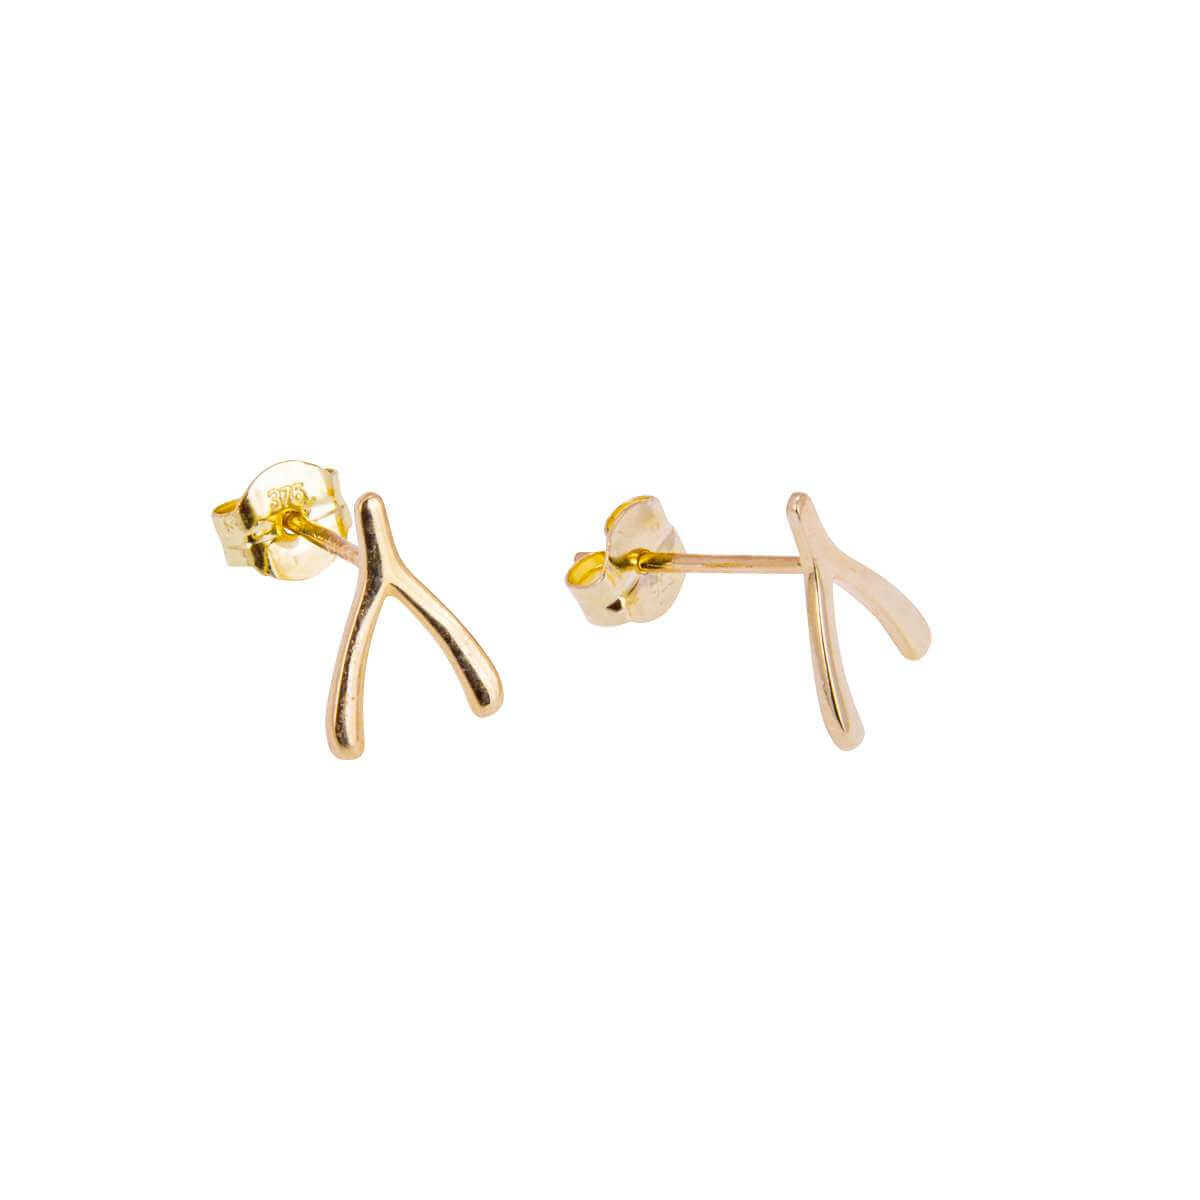 9ct Gold Wishbone Stud Earrings